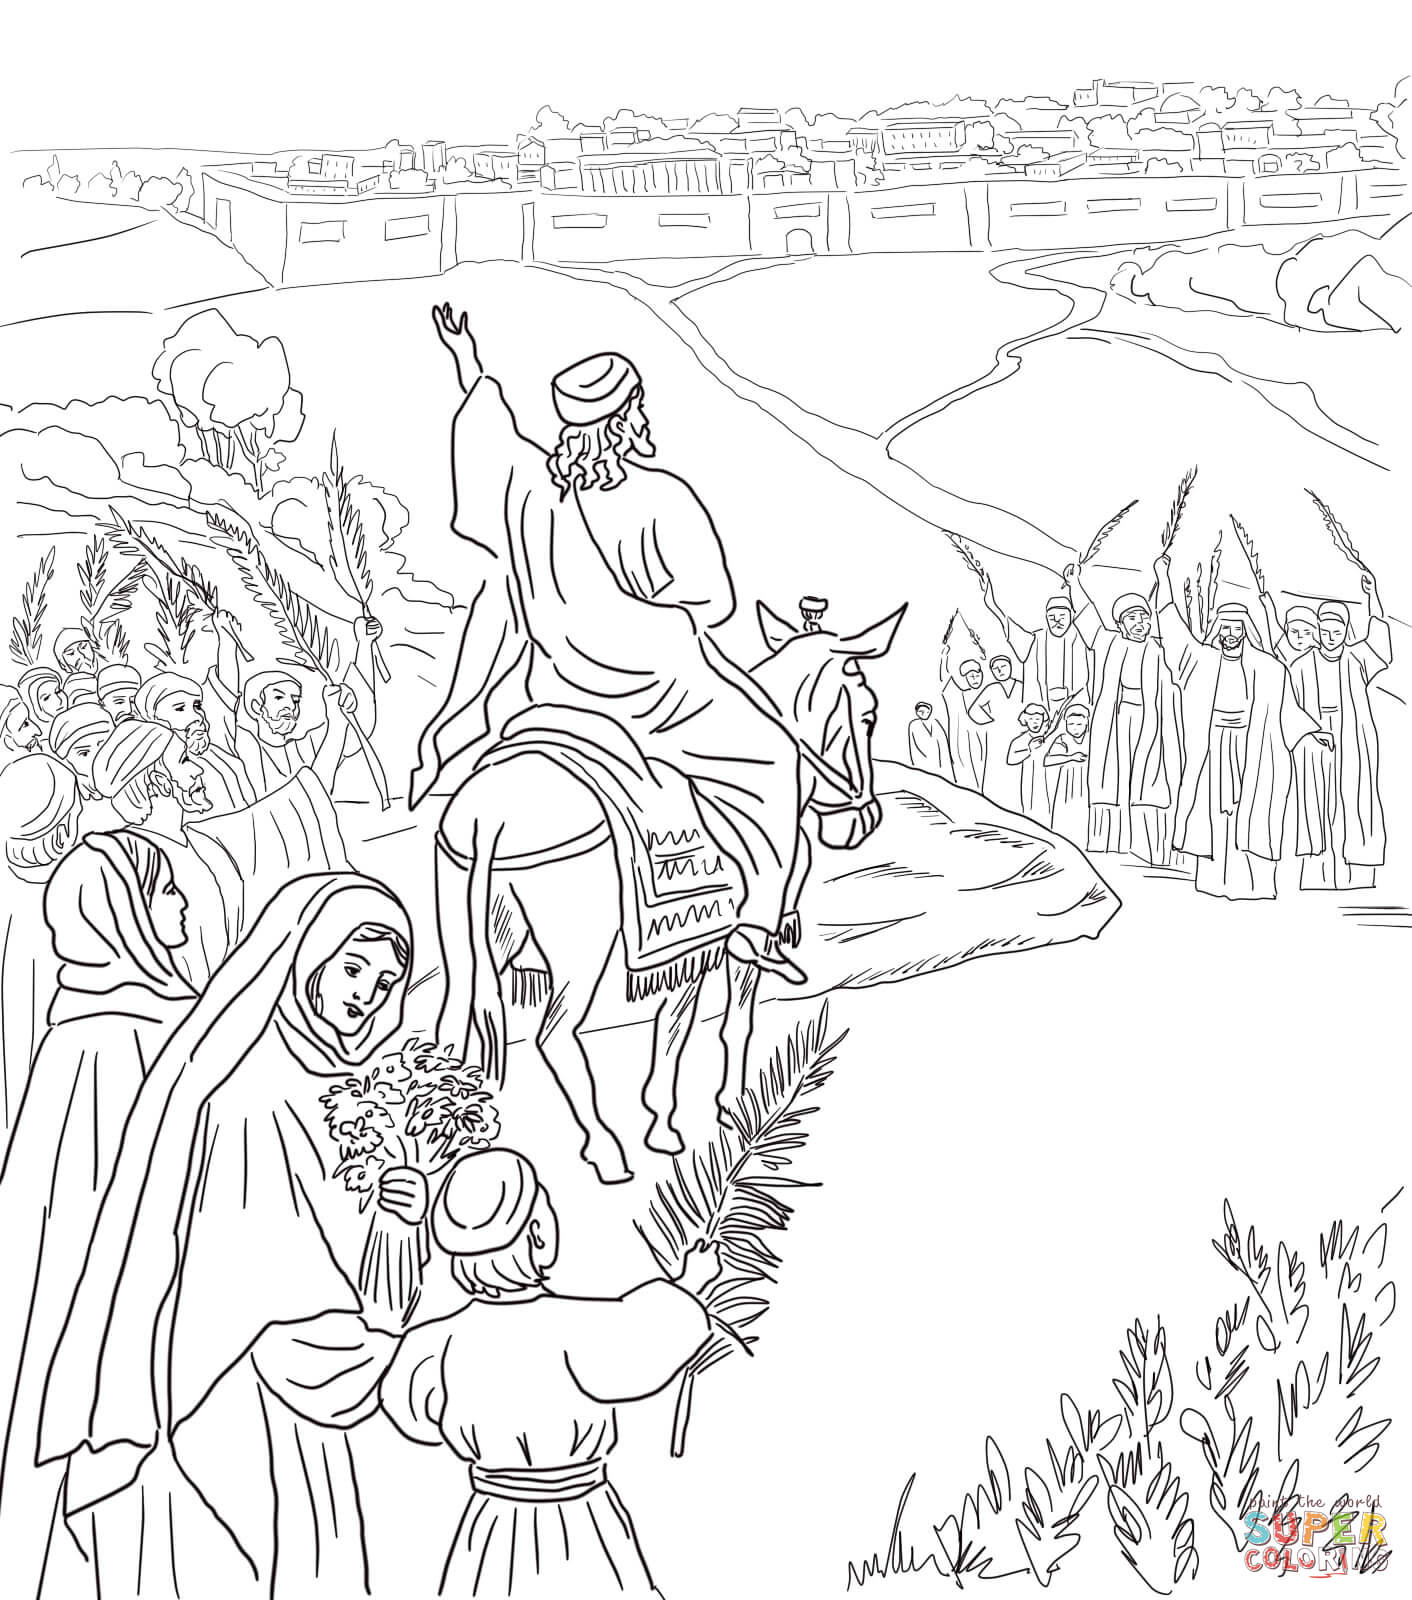 Palm Sunday Coloring Pages Free Coloring Pages